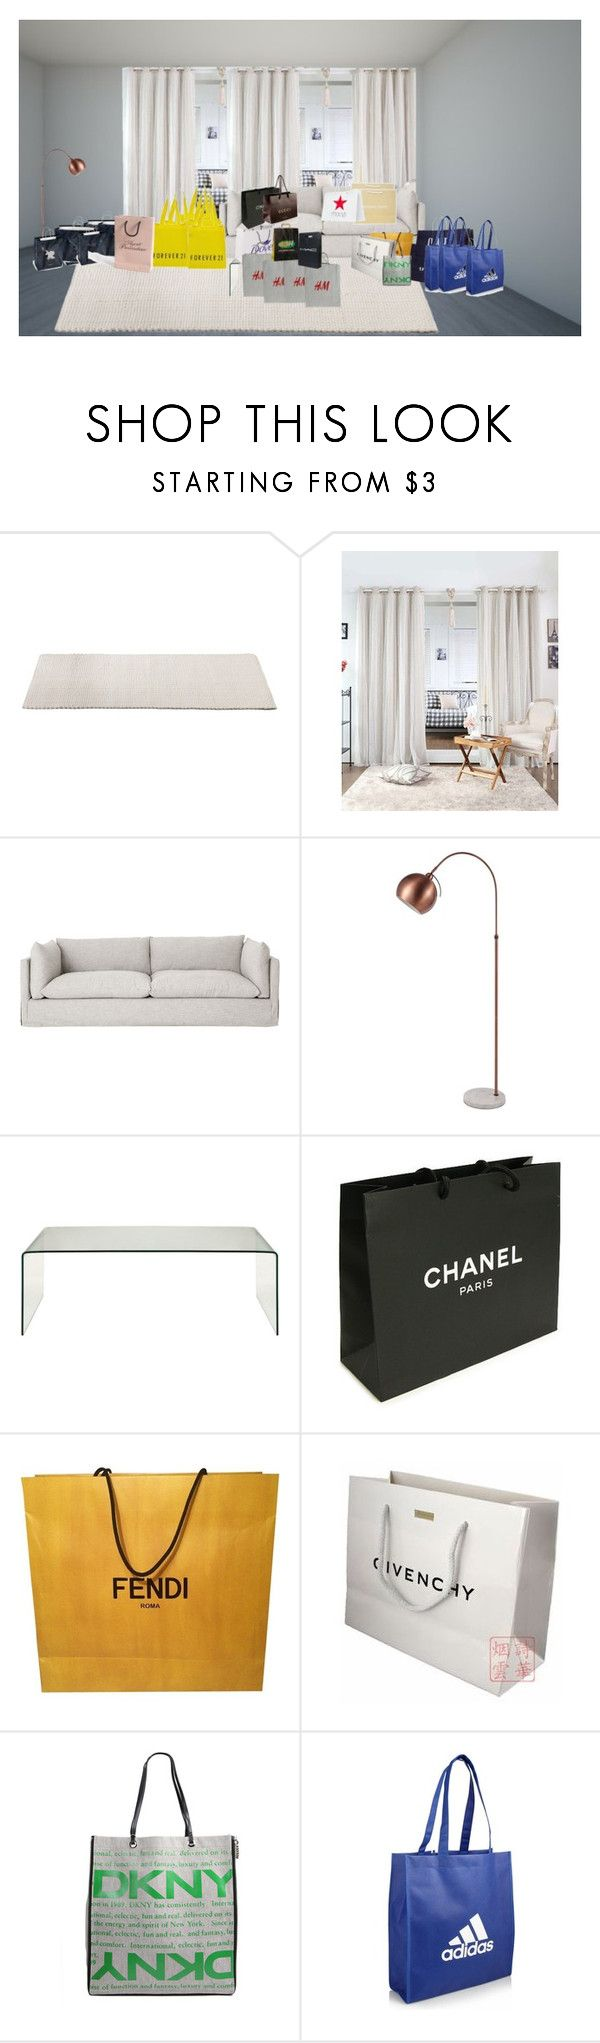 """""""Sem título #547"""" by paradapermitida on Polyvore featuring moda, Best Home Fashion, Forever 21, Chanel, Fendi, Givenchy, CO, American Eagle Outfitters, H&M e DKNY"""